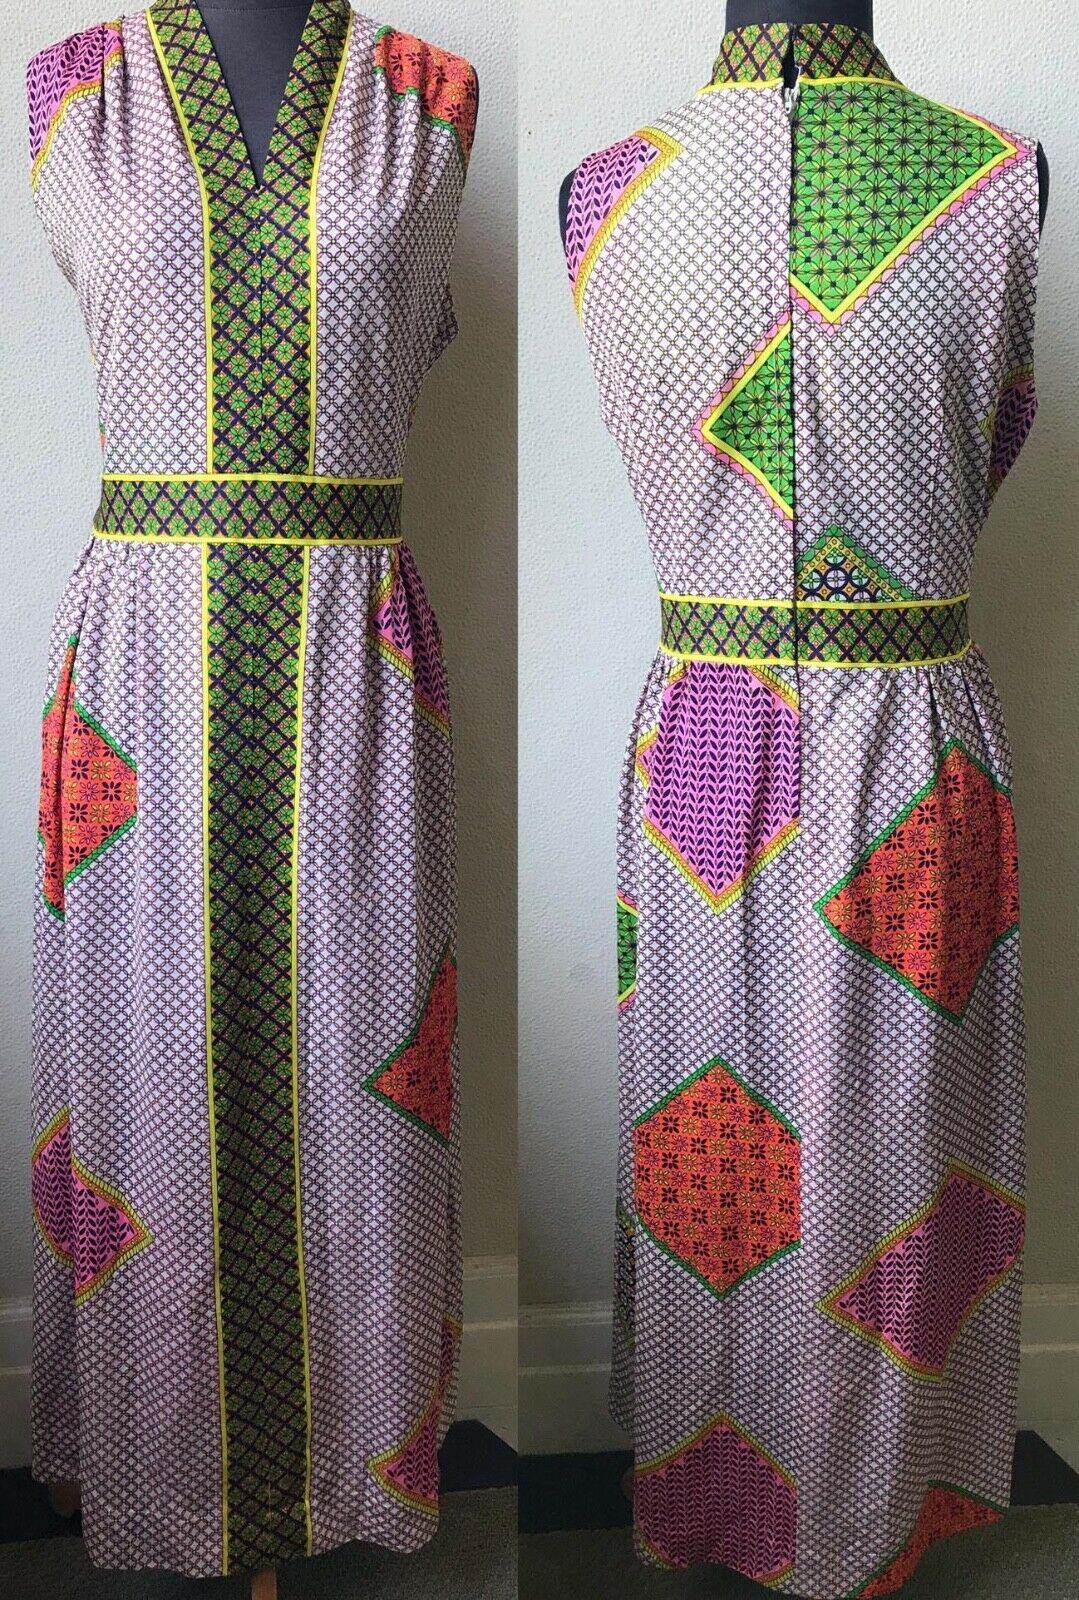 60's Really Cute Patchwork Mod Look Summer Maxi D… - image 1